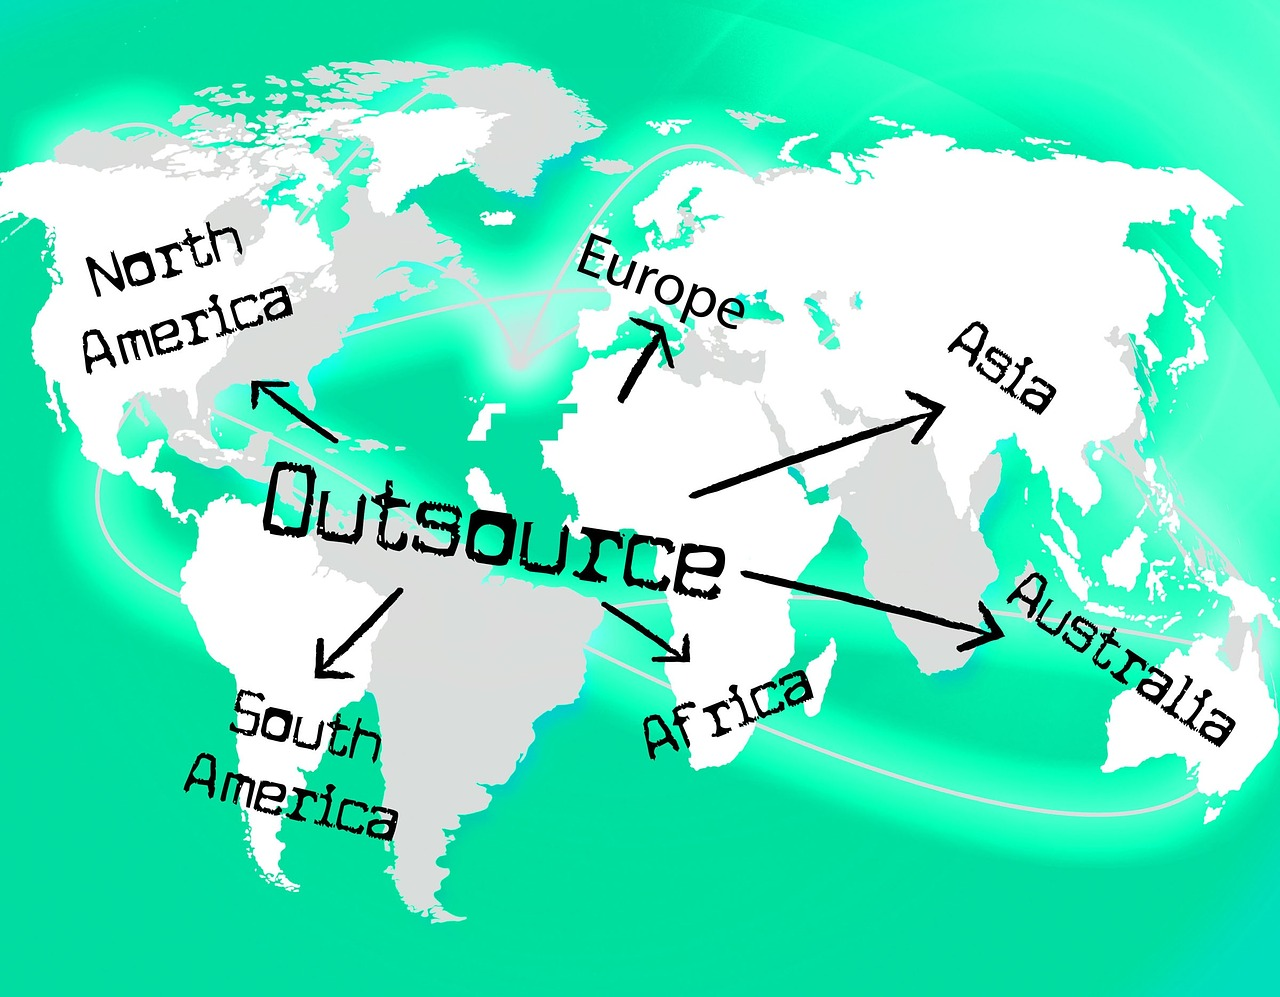 outsource-1345109_1280